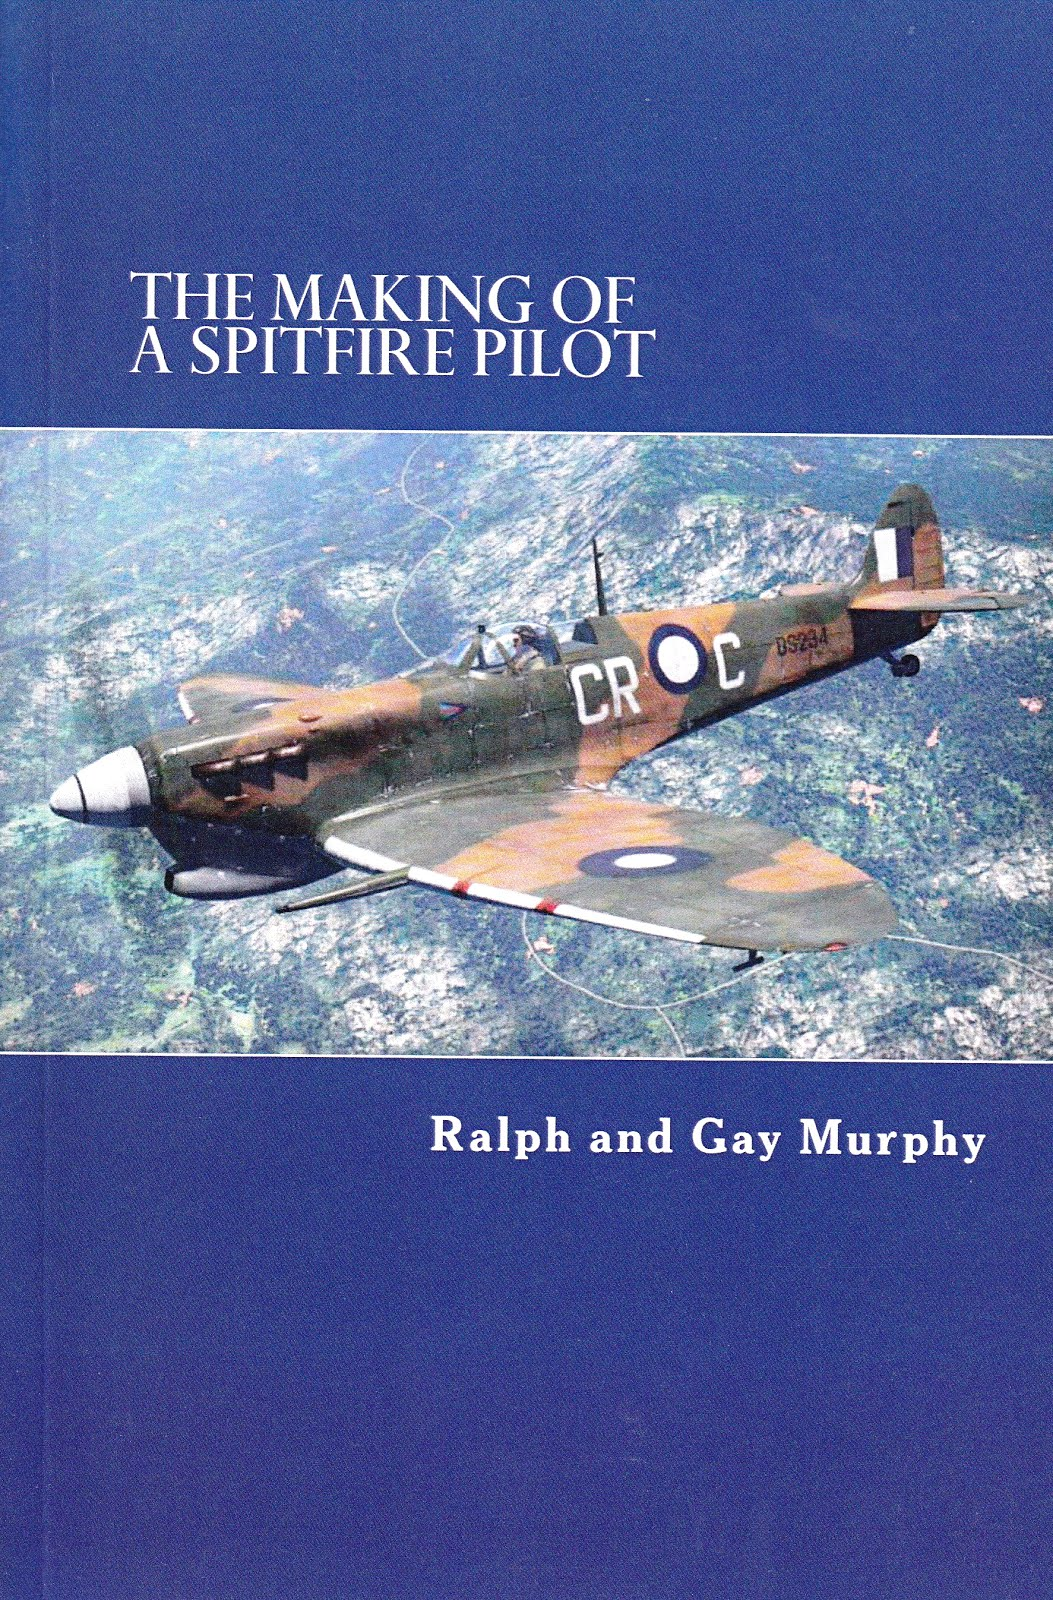 The Making of a Spitfire Pilot